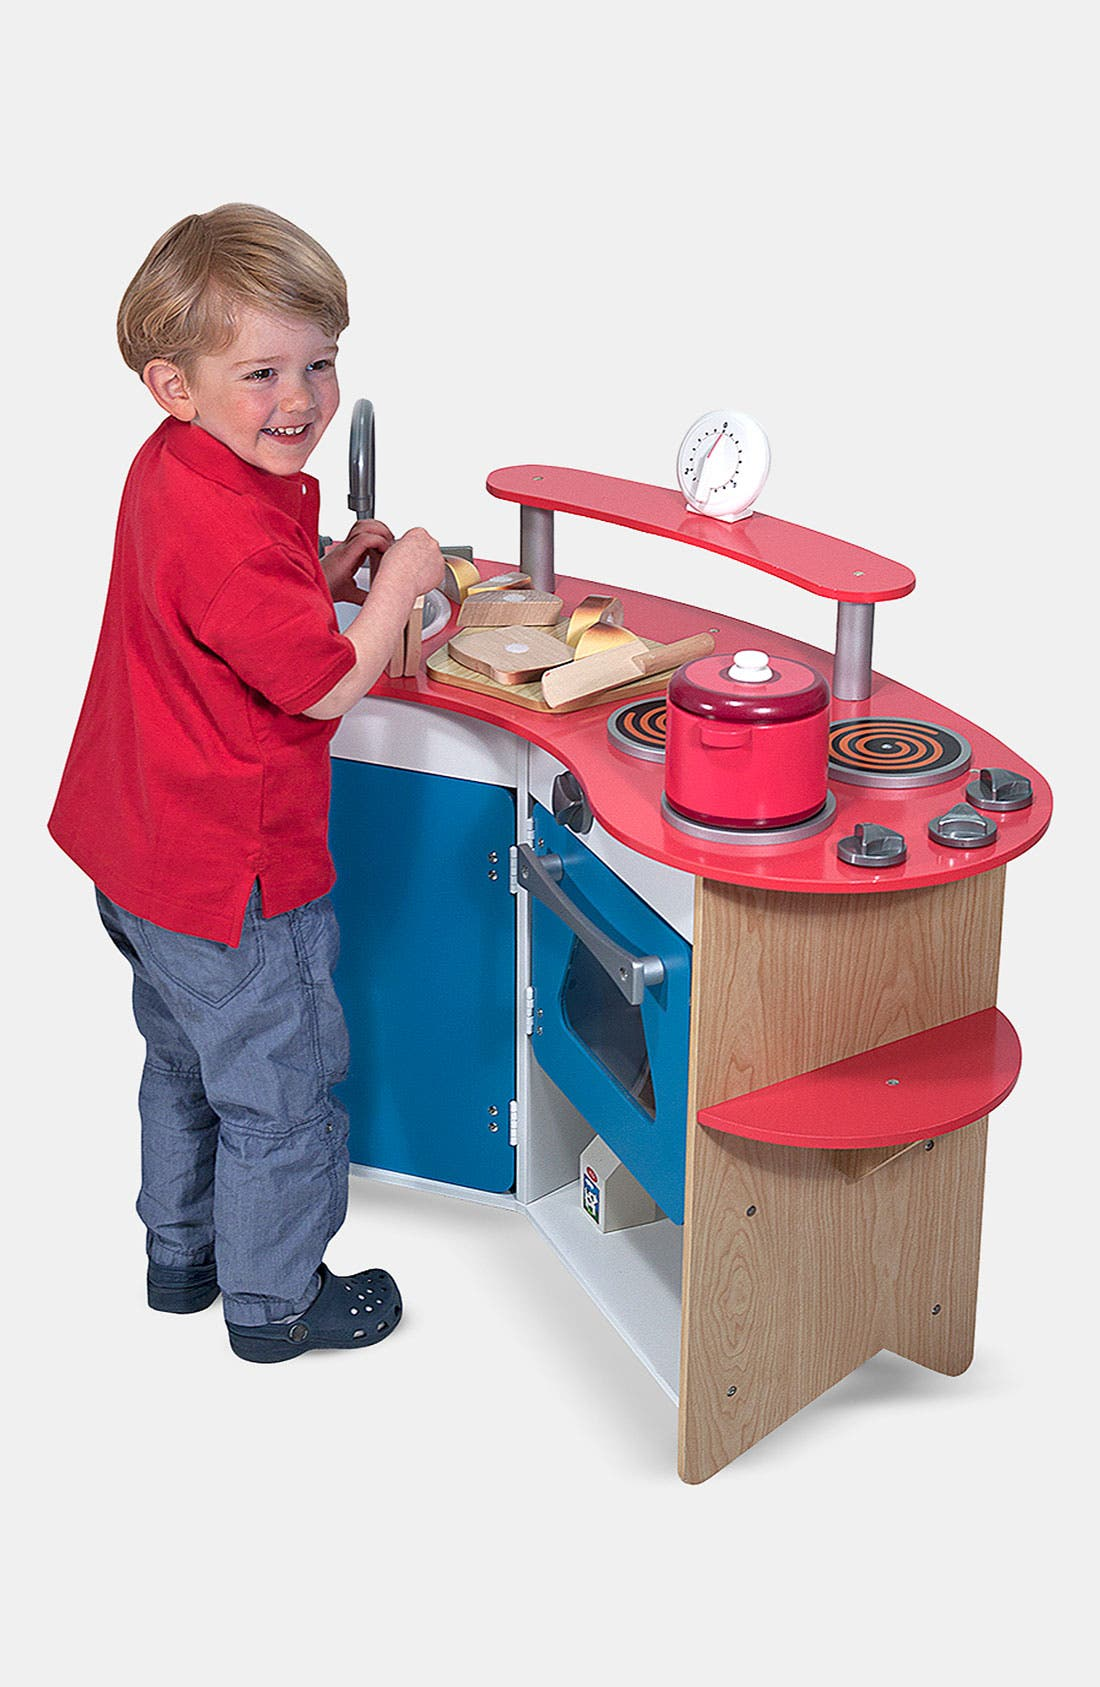 Melissa & Doug 'Cook's Corner' Wooden Play Kitchen